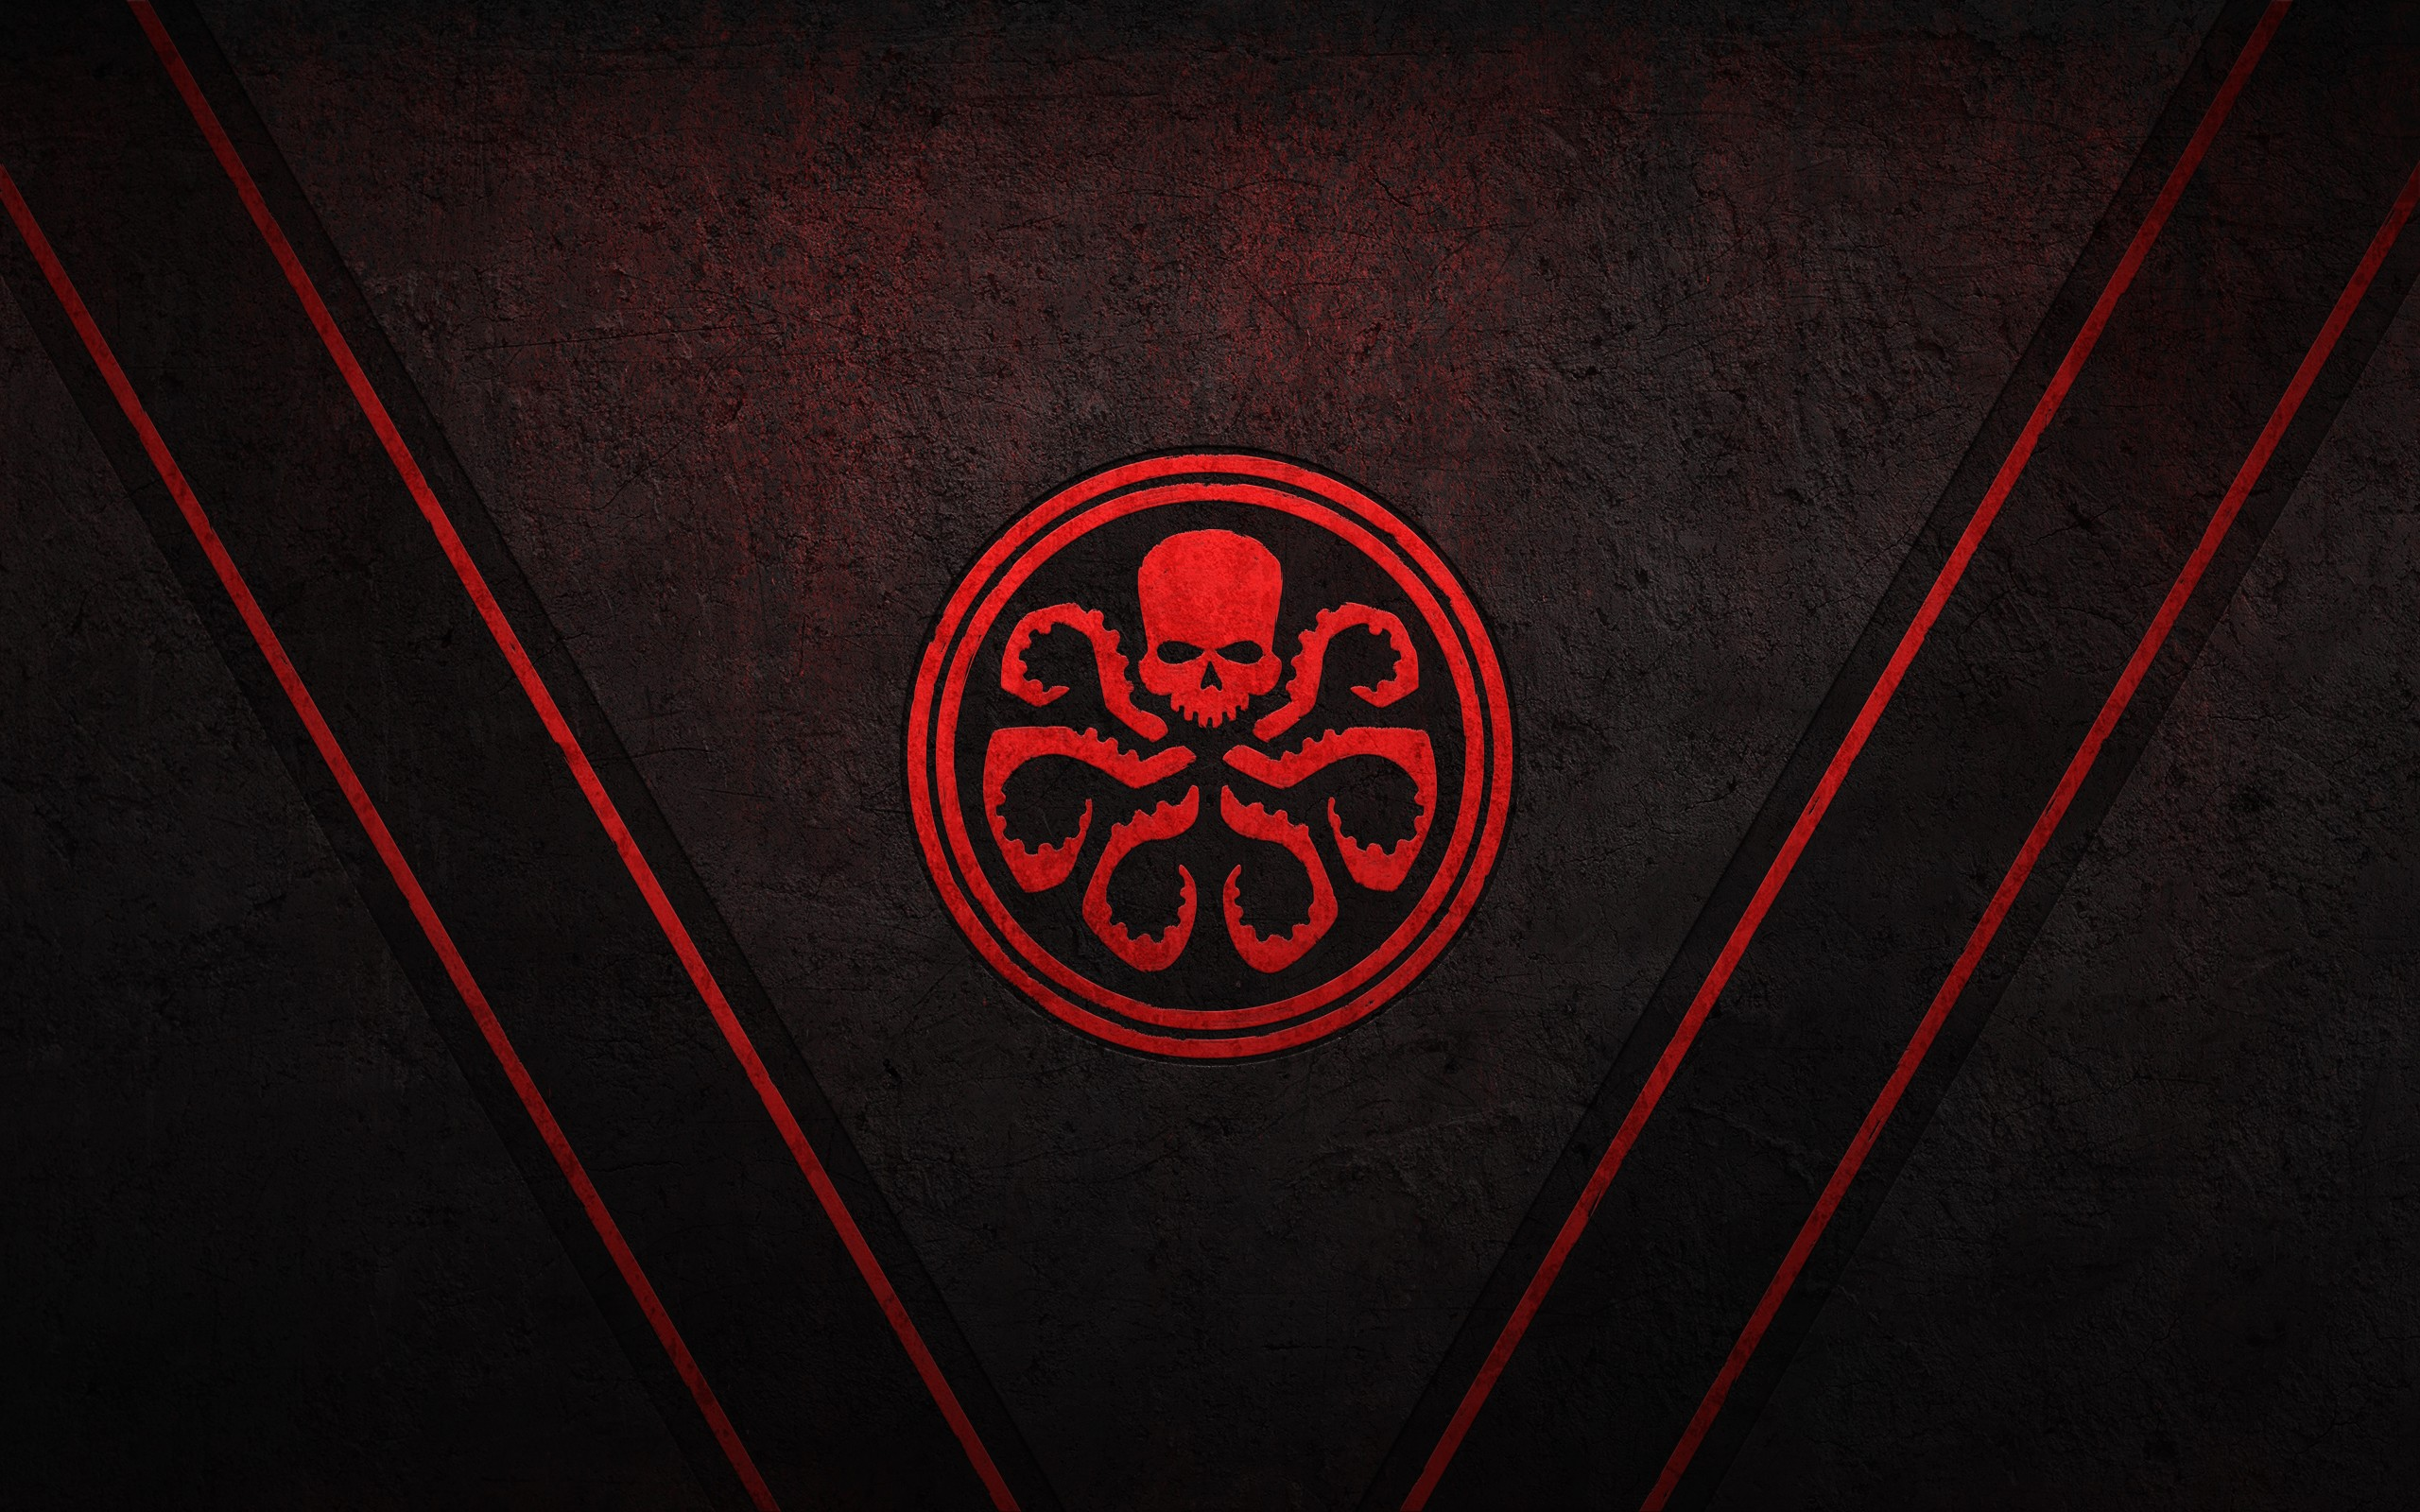 Black And Red Gaming 2560x1600 Wallpaper Teahub Io